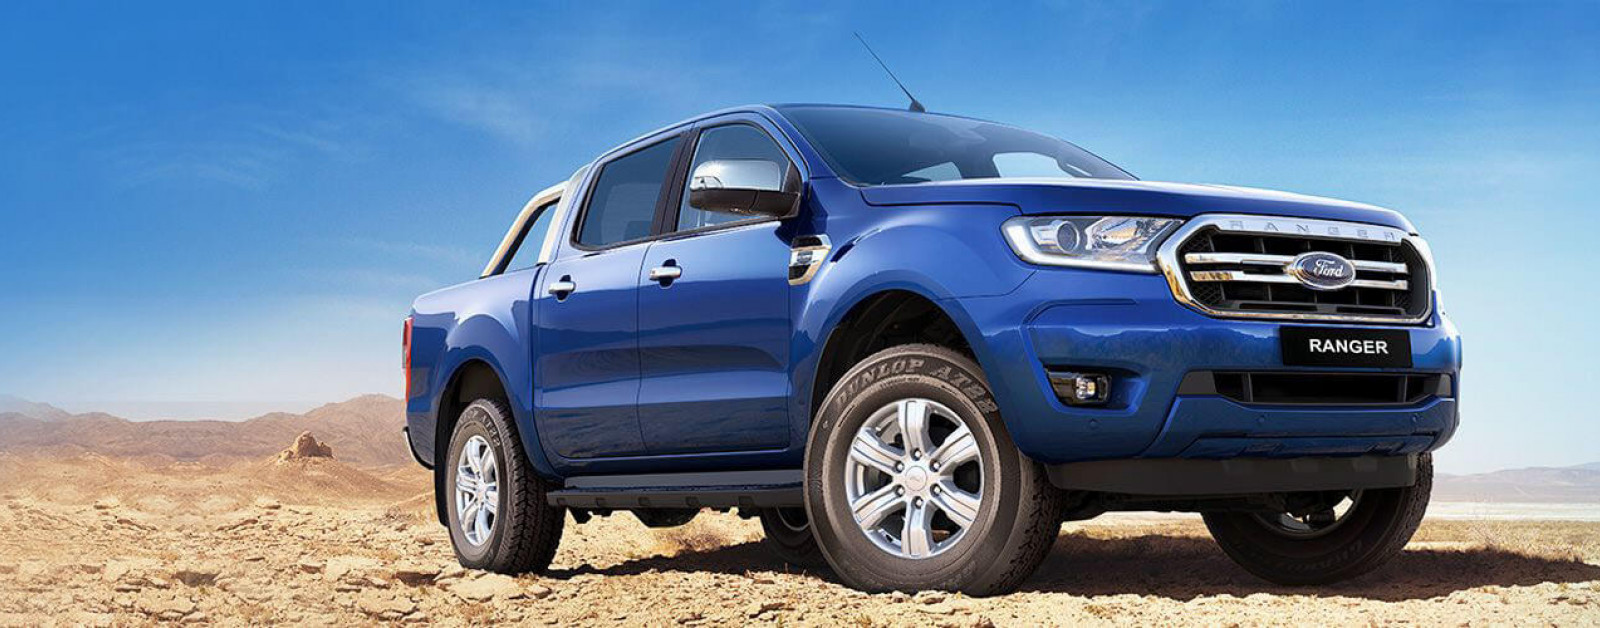 New Ford Ranger For Sale In Darwin Hidden Valley Ford